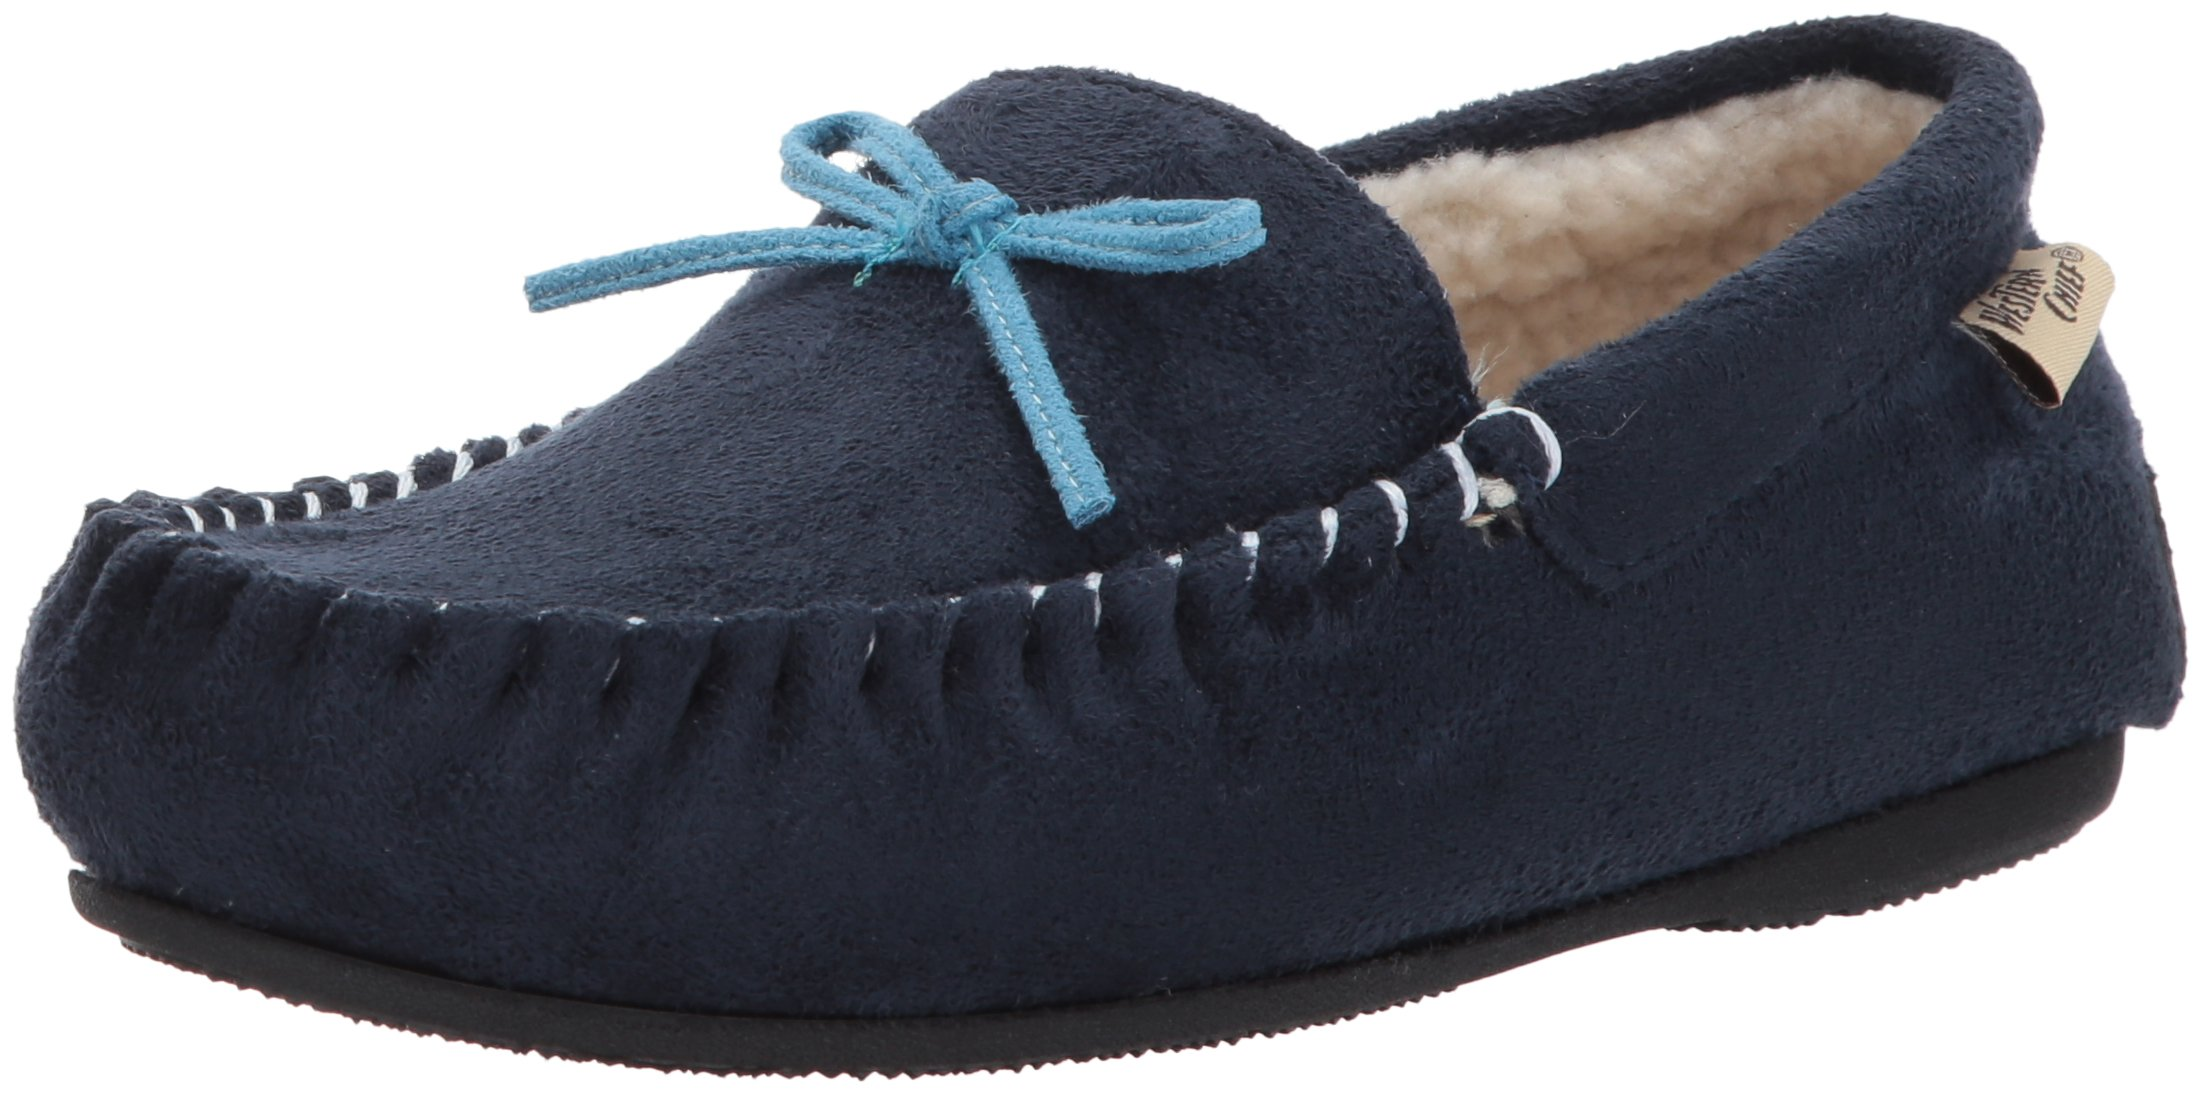 Western Chief Women's Plush Slipper Moccasin, Navy, 9 M US